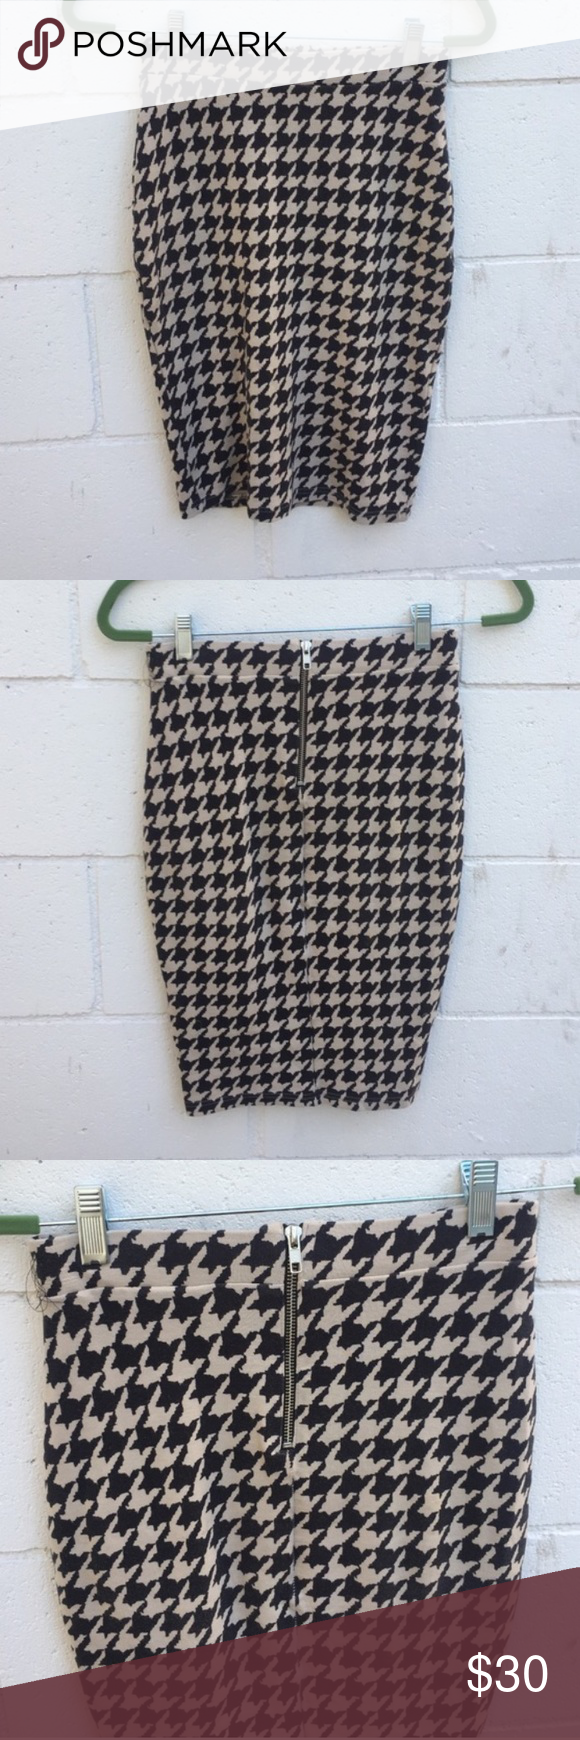 """H&M Black and white Houndstooth Pencil Midi Skirt Black and white Houndstooth skirt by H&M. Worn a few times and material is a bit pilly. Waist is elastic and zipper in back. Size XS. Length is about 22"""" long. H&M Skirts Mini"""